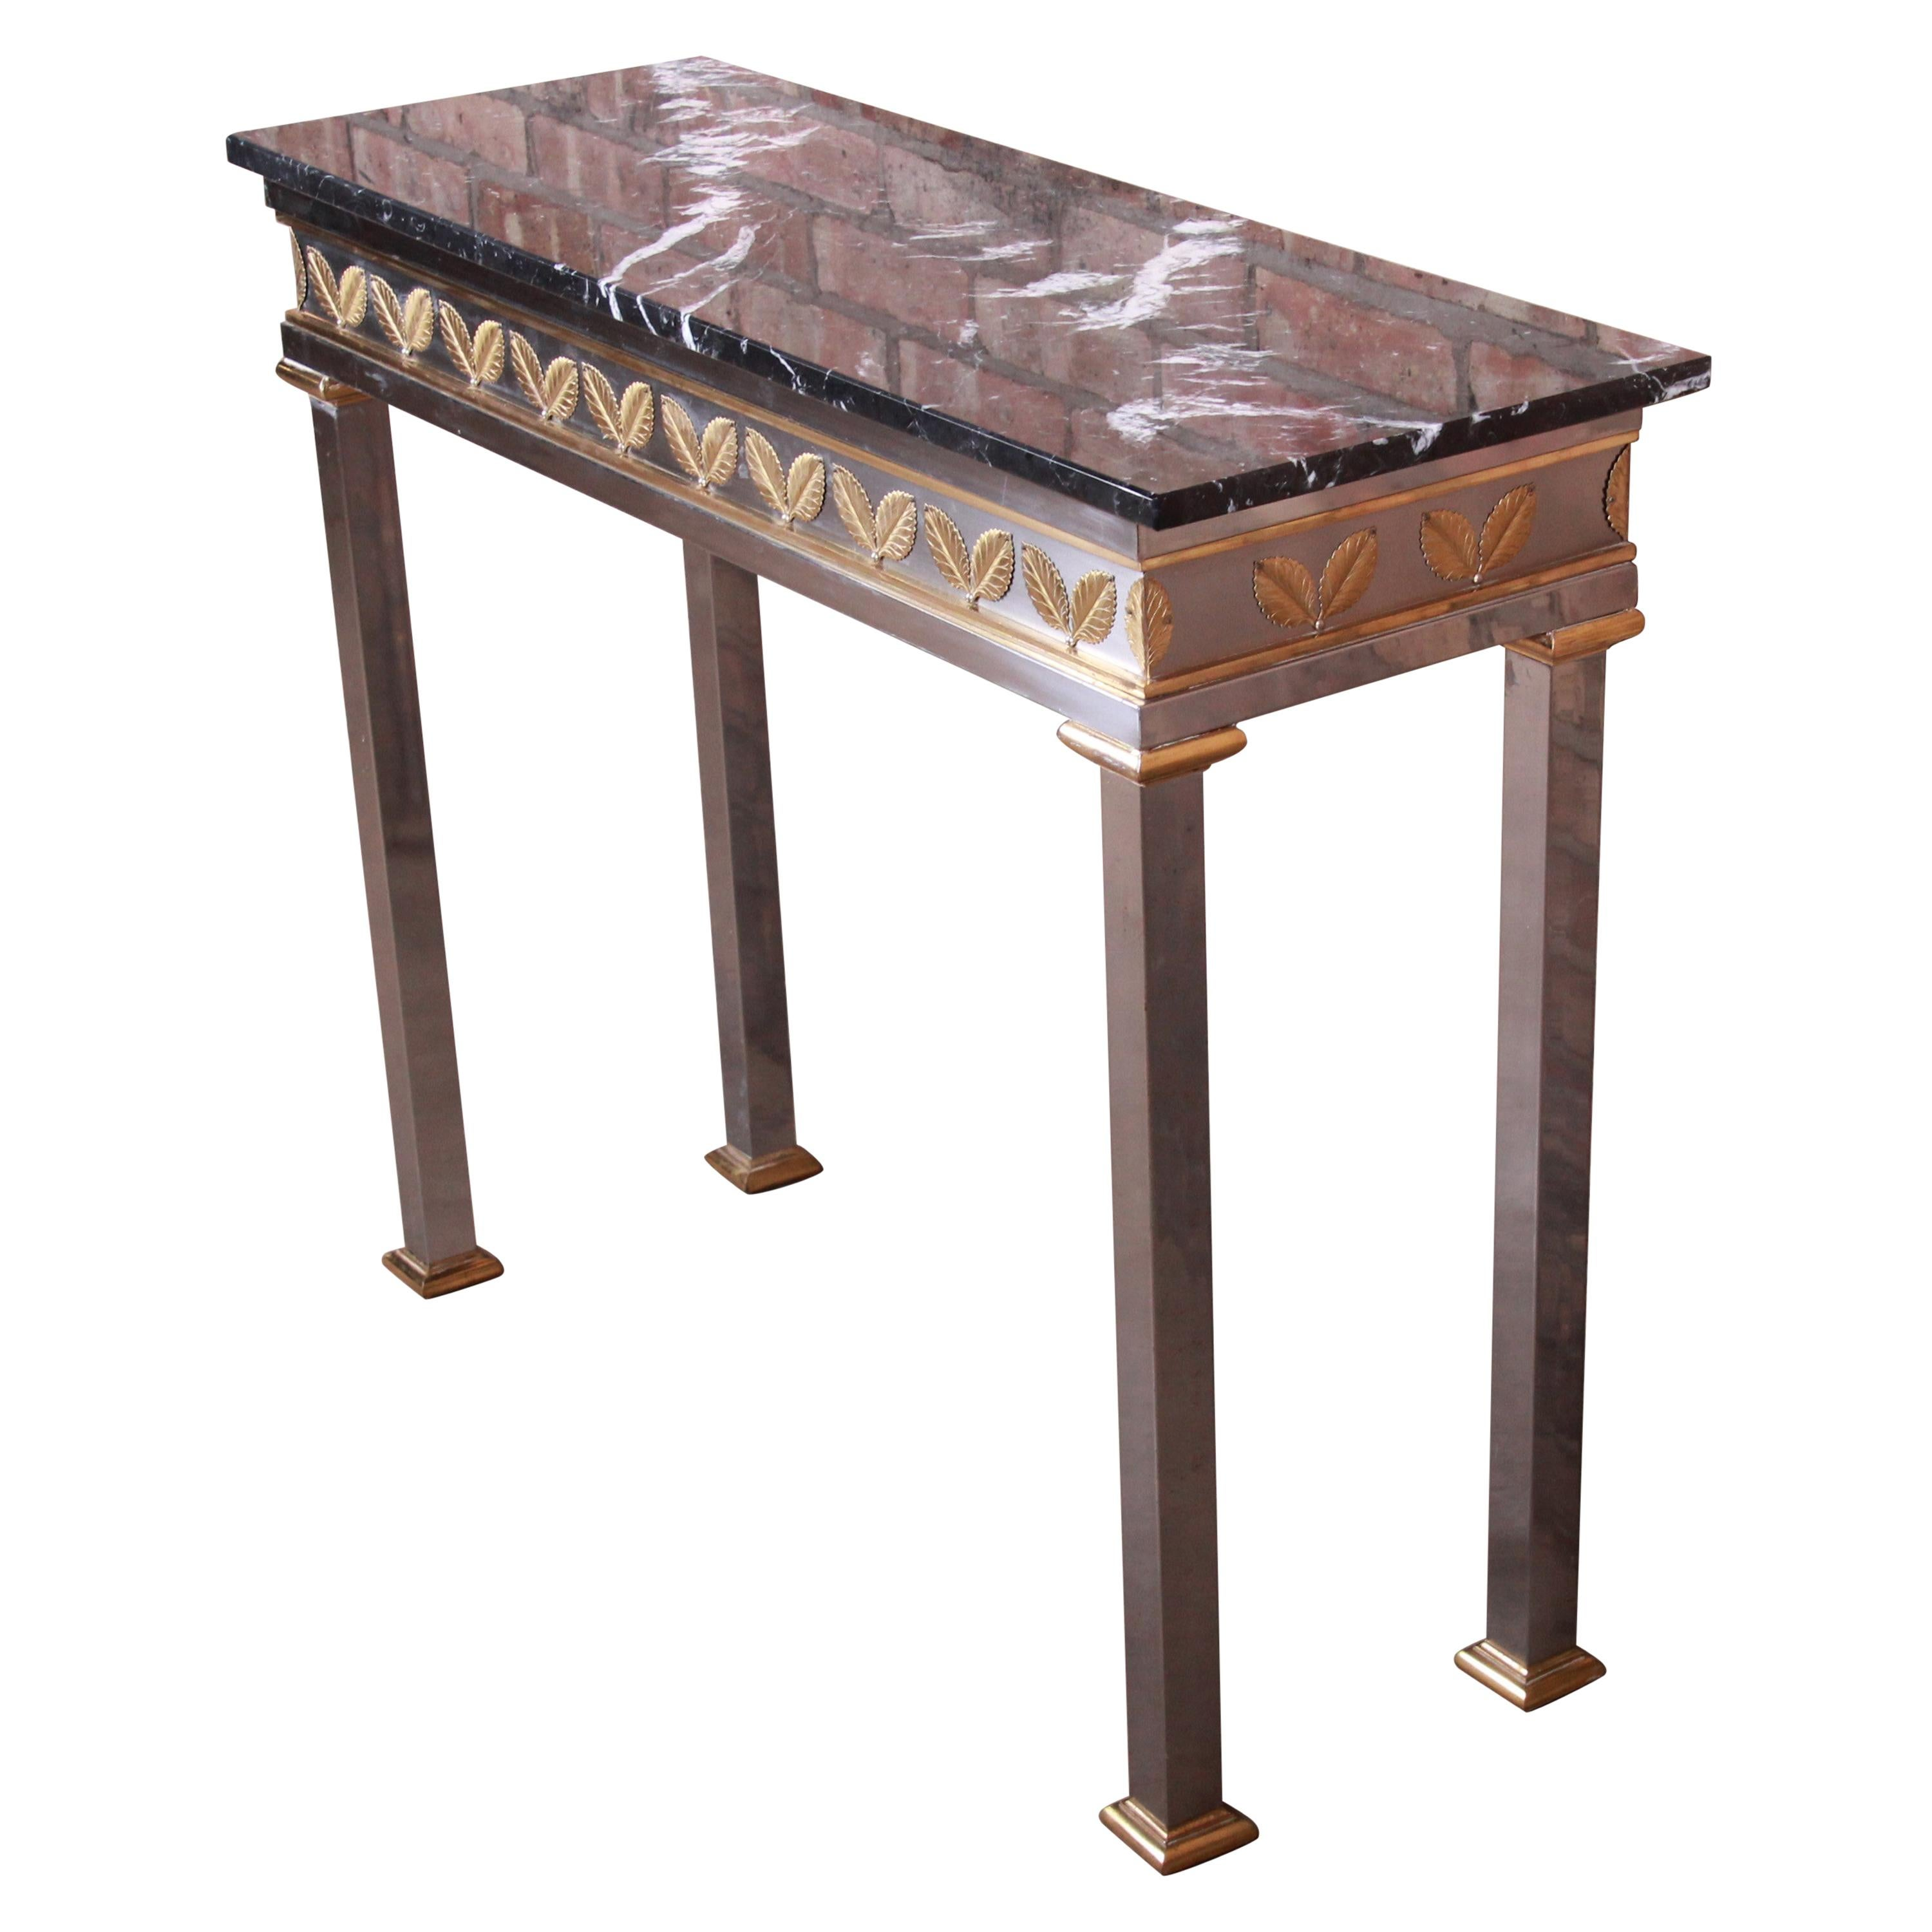 Italian Modern Console Table in Chrome, Brass, and Marble